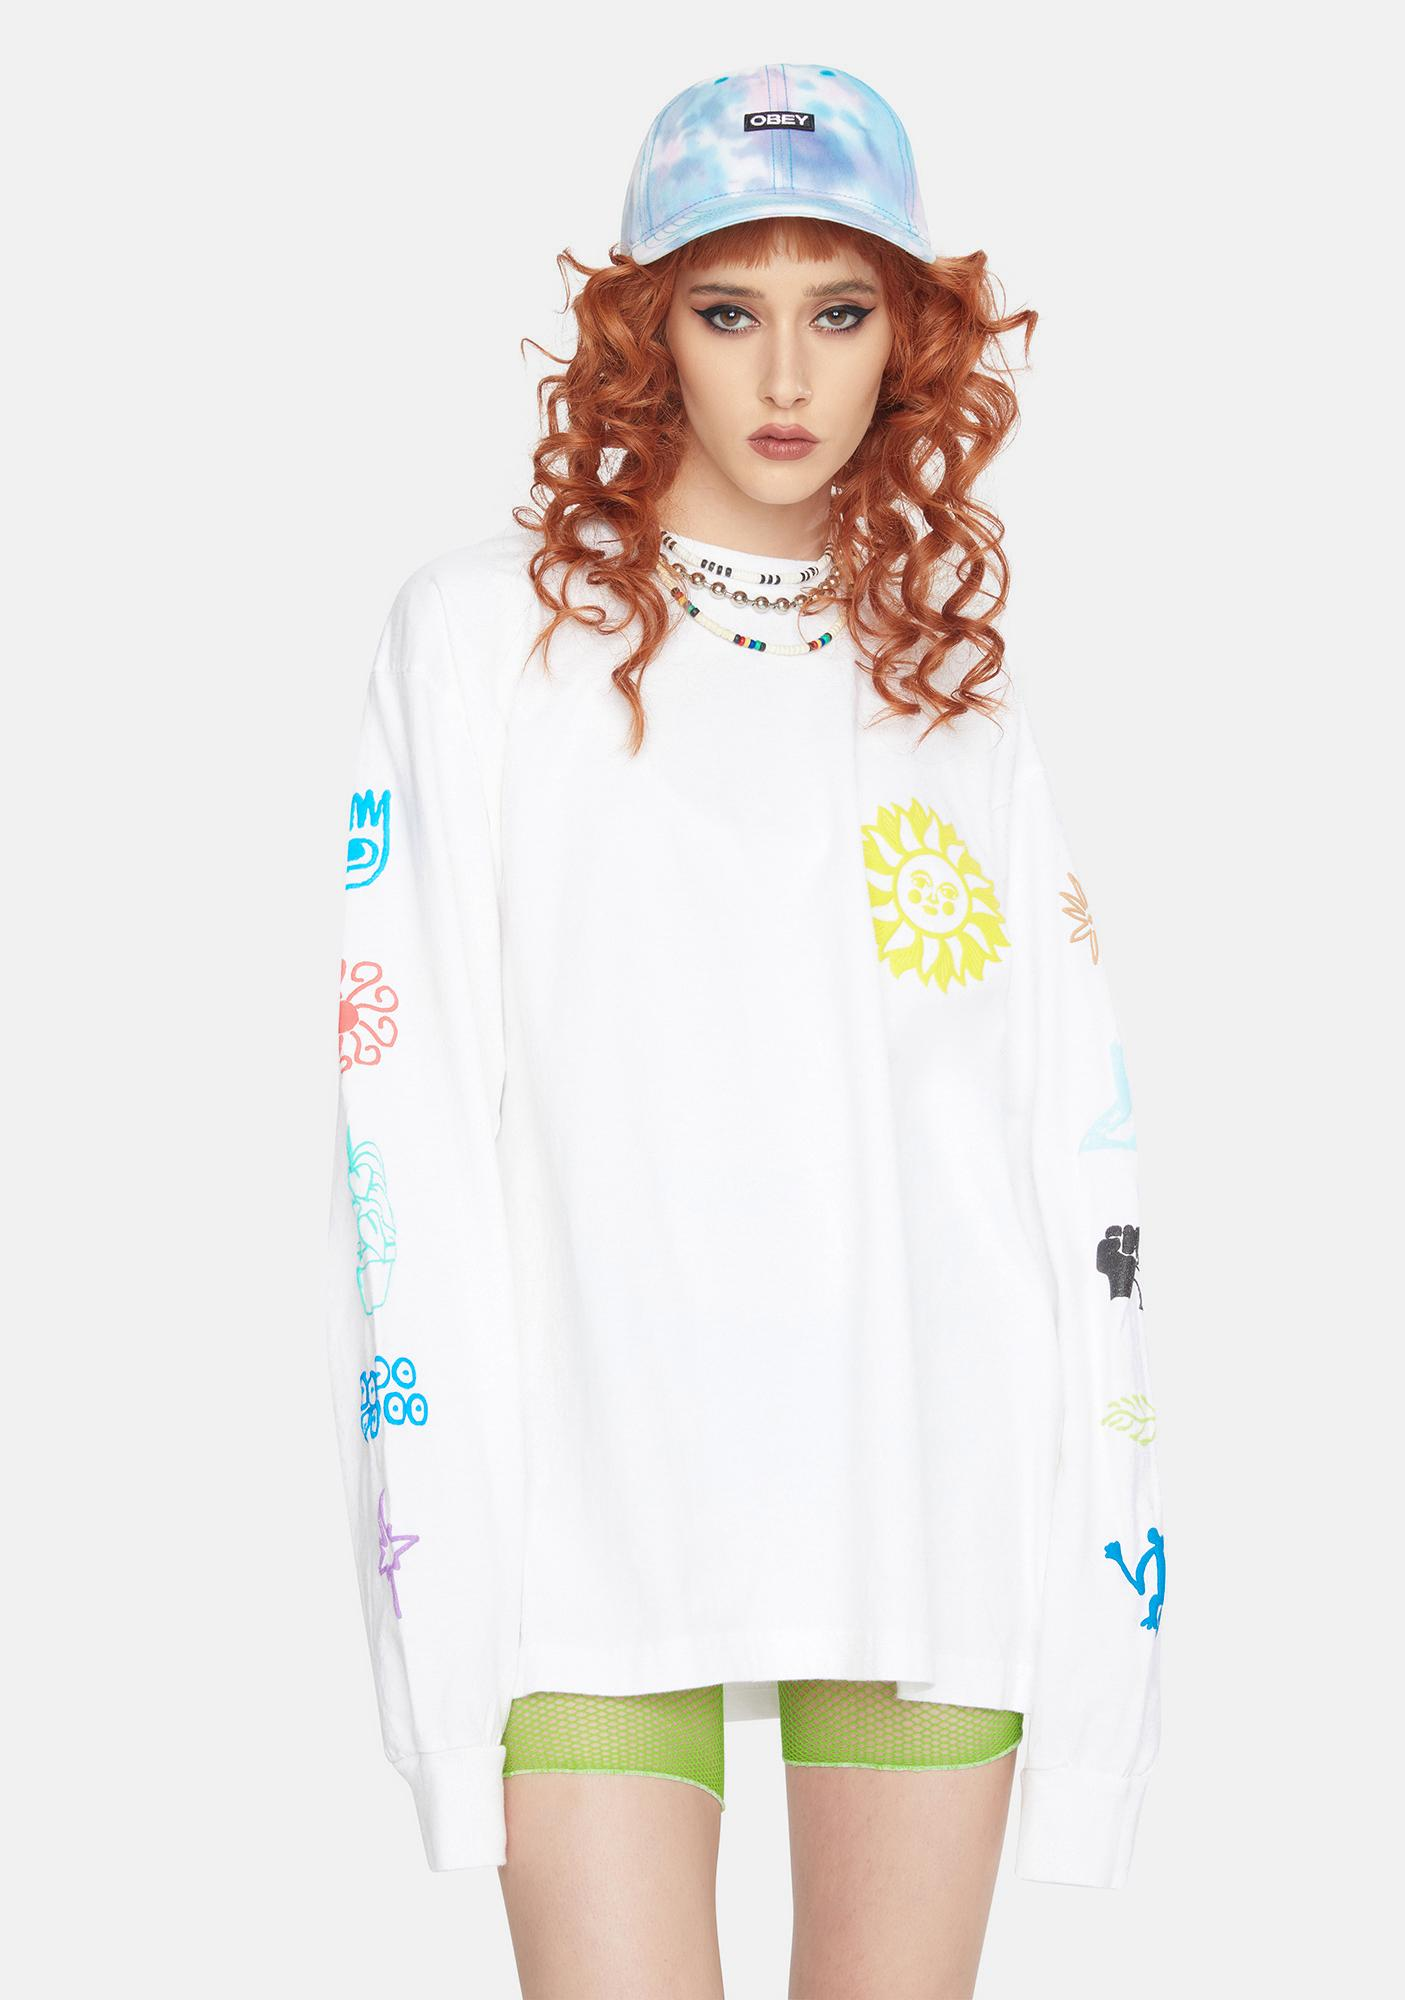 Obey Peace Justice Equality Graphic Tee